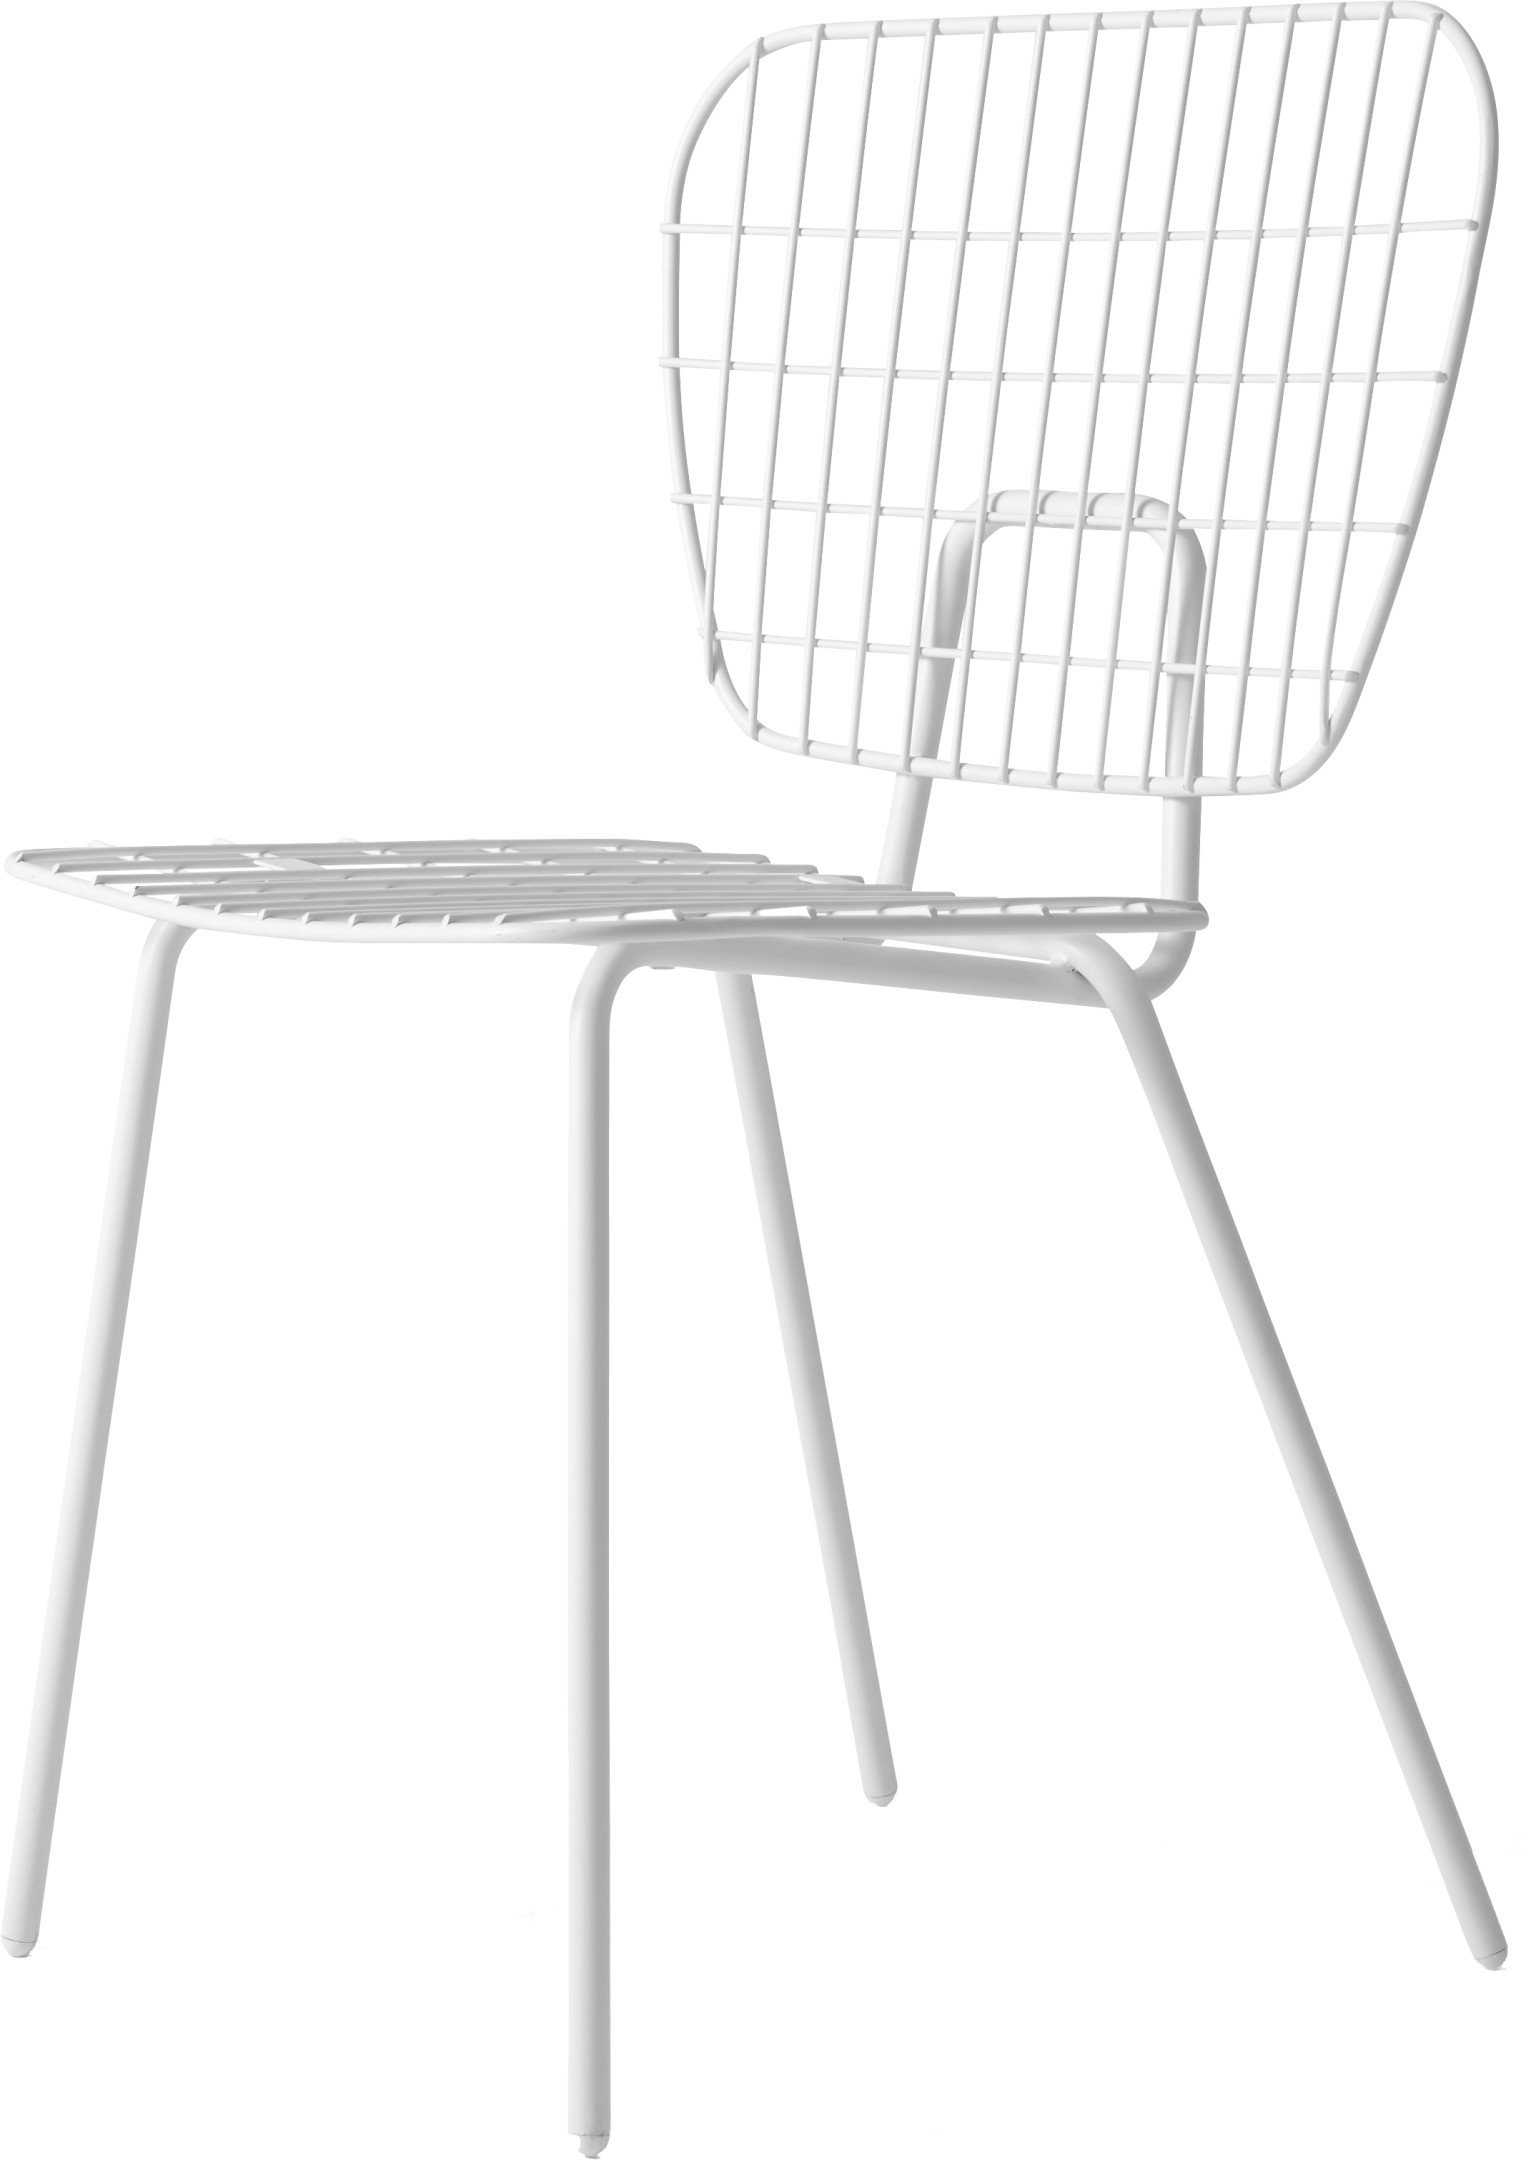 WM String Chair White by Studio WM for Menu